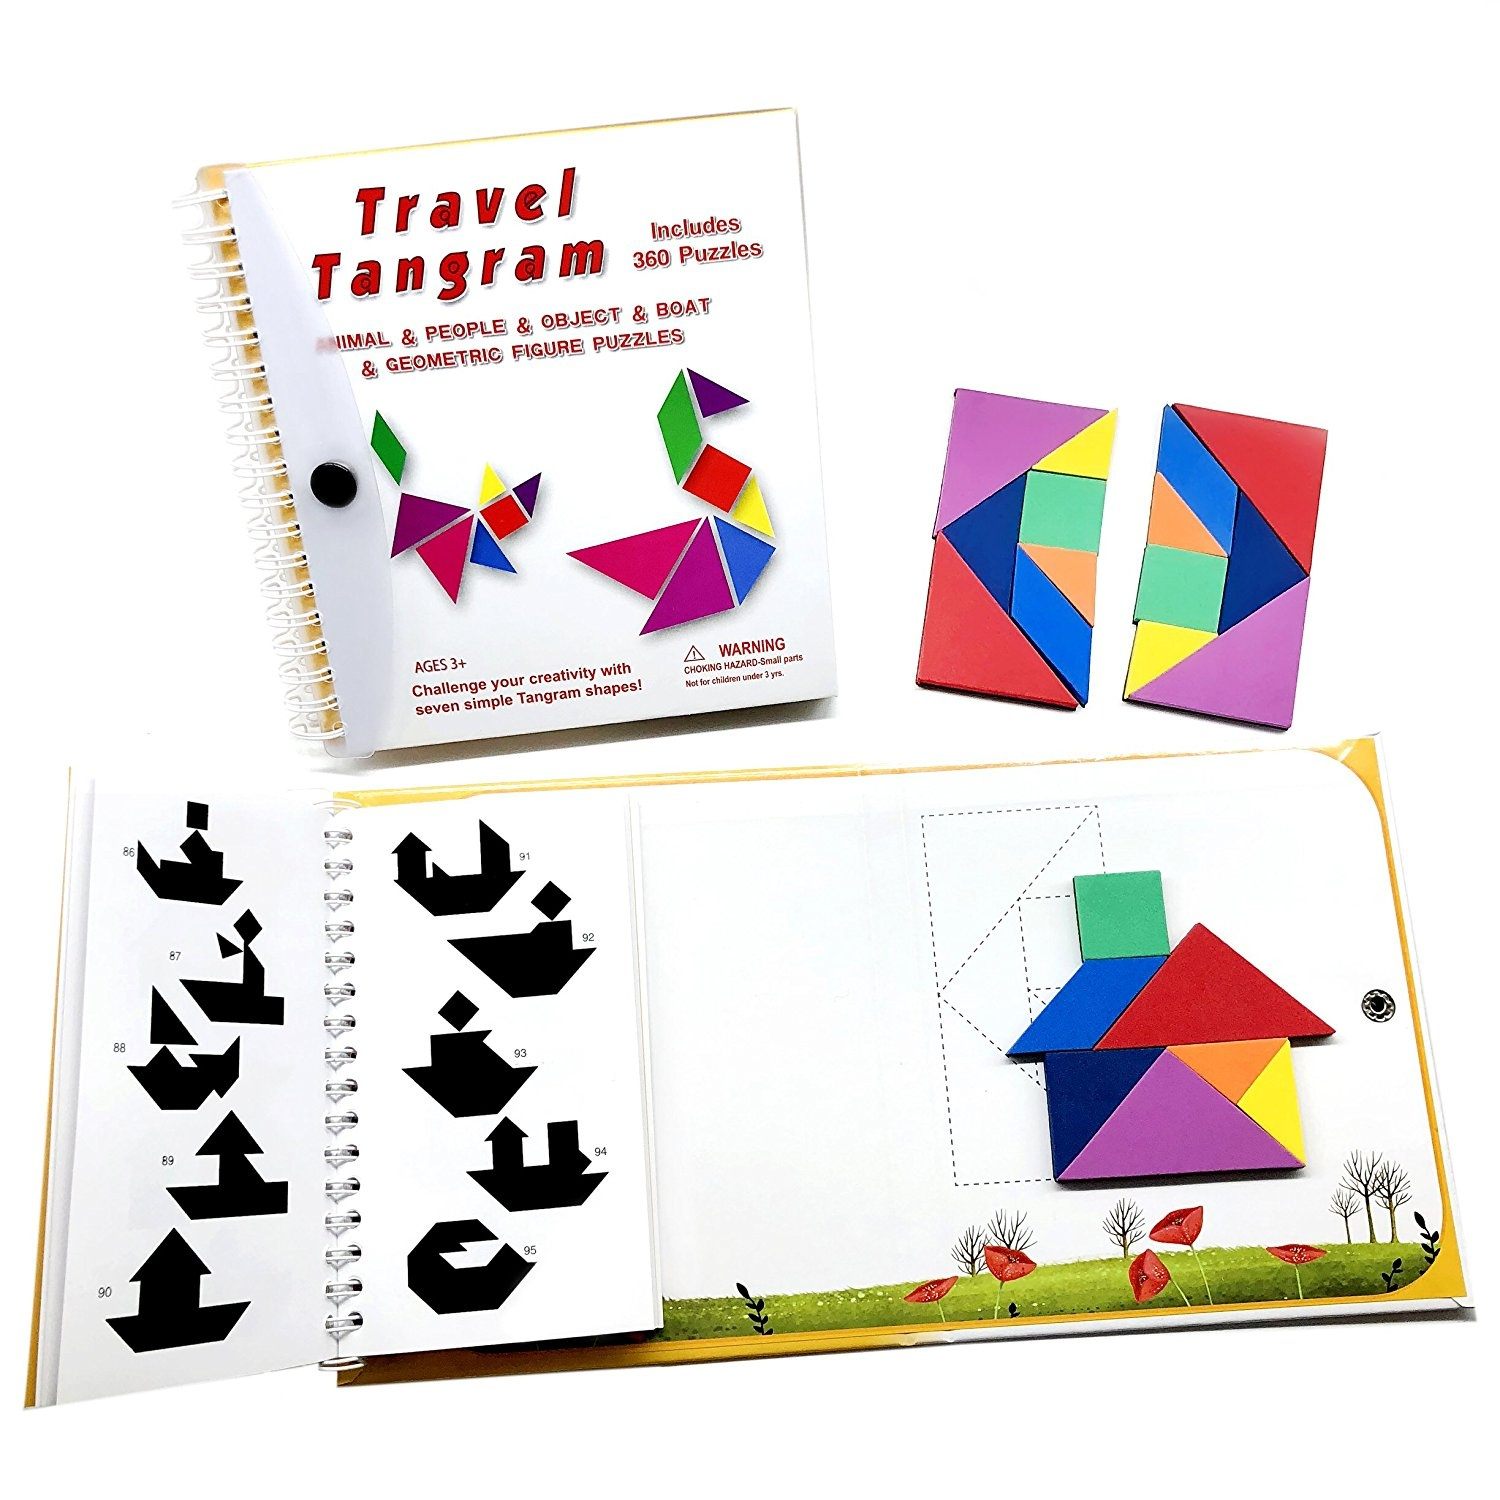 Tangram Travel Games 360 Magnetic Puzzle And Questions Build Animals People  Objects With 7 Simple Magnetic Colourful Shapes Kid Adult Challenge Iq intérieur Tangram Simple